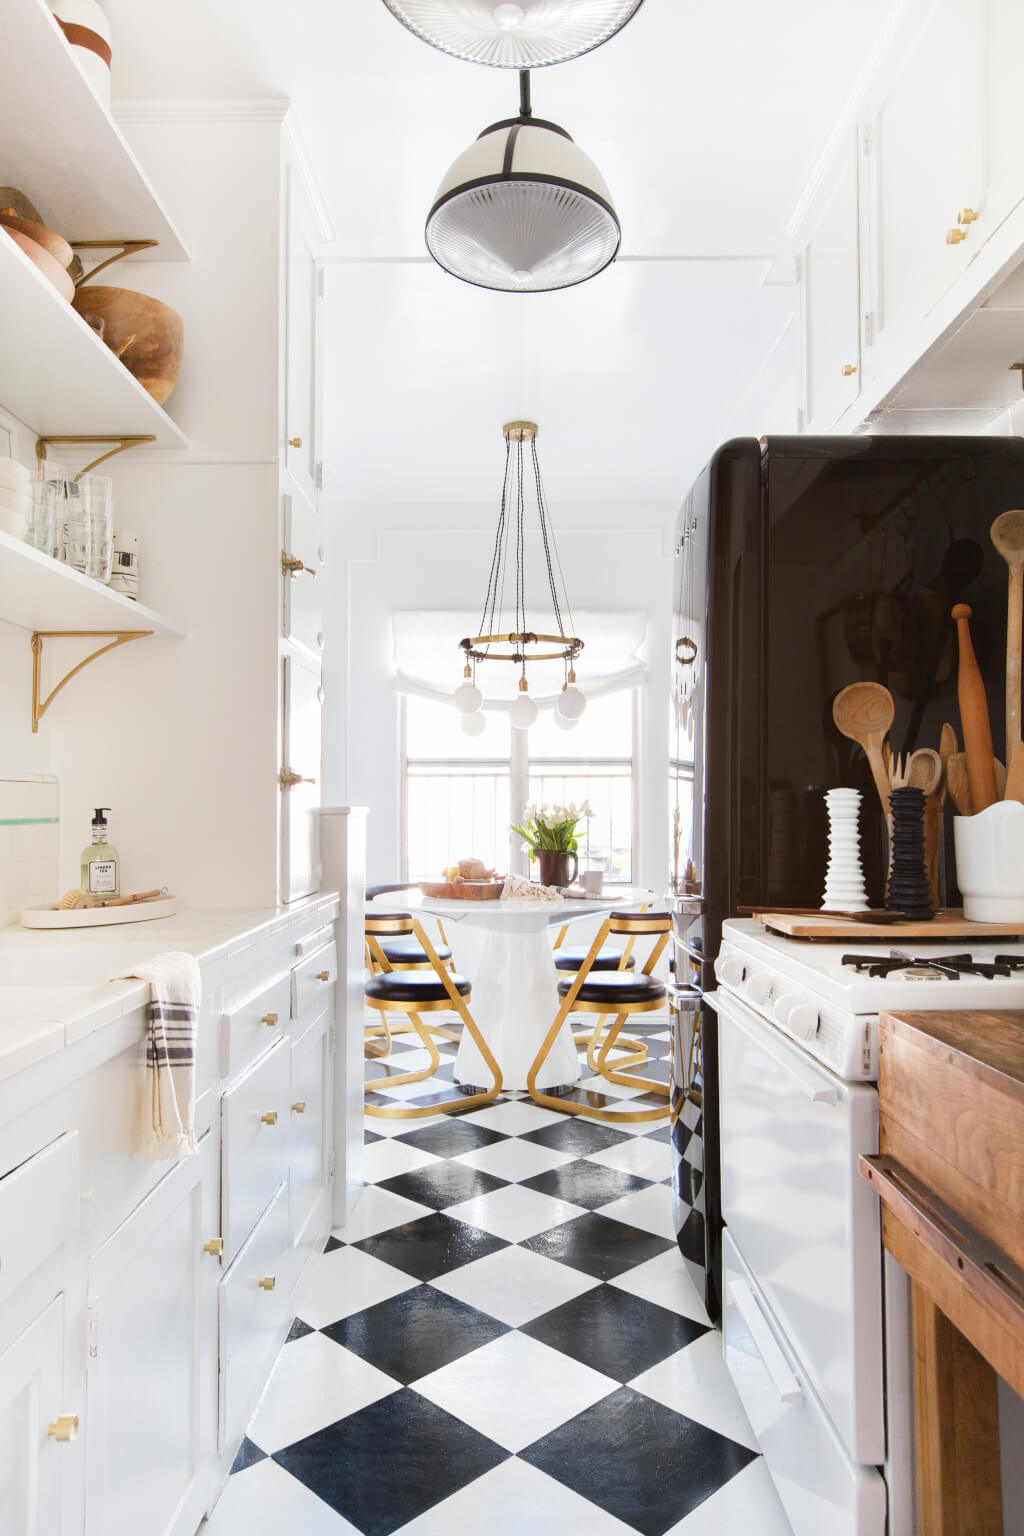 Brady-Tolbert_Emily-Henderson_Black-and-White-Kitchen_Vintage_Apartment-Refresh_Wood_Brass_Checkered-Floor_Copper-Pots_Eclectic_Glam_Modern_Traditional_18-1024x1536